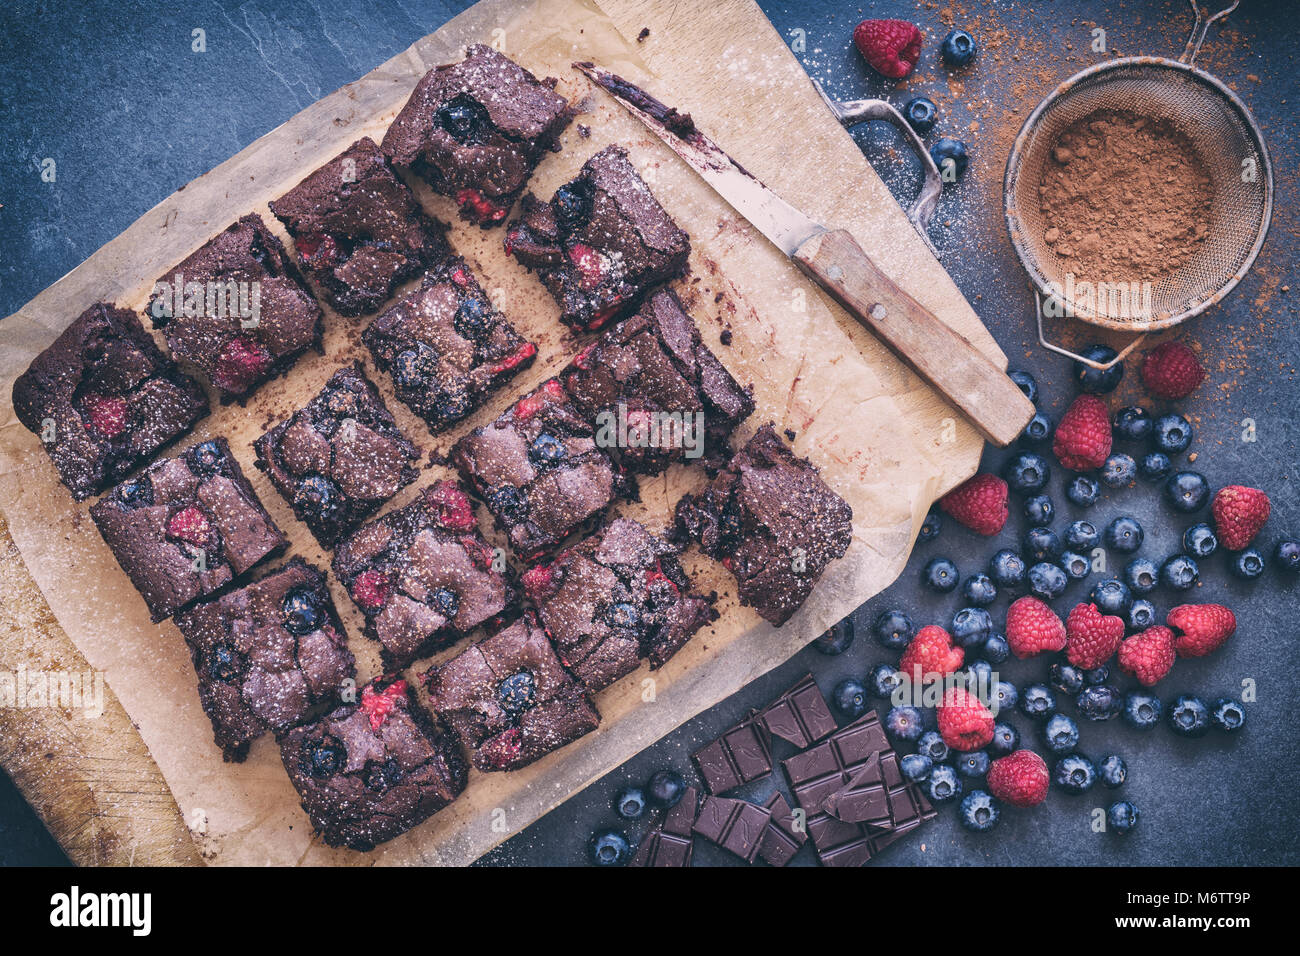 Homemade Chocolate raspberry and blueberry brownies with ingredients on a slate background. - Stock Image